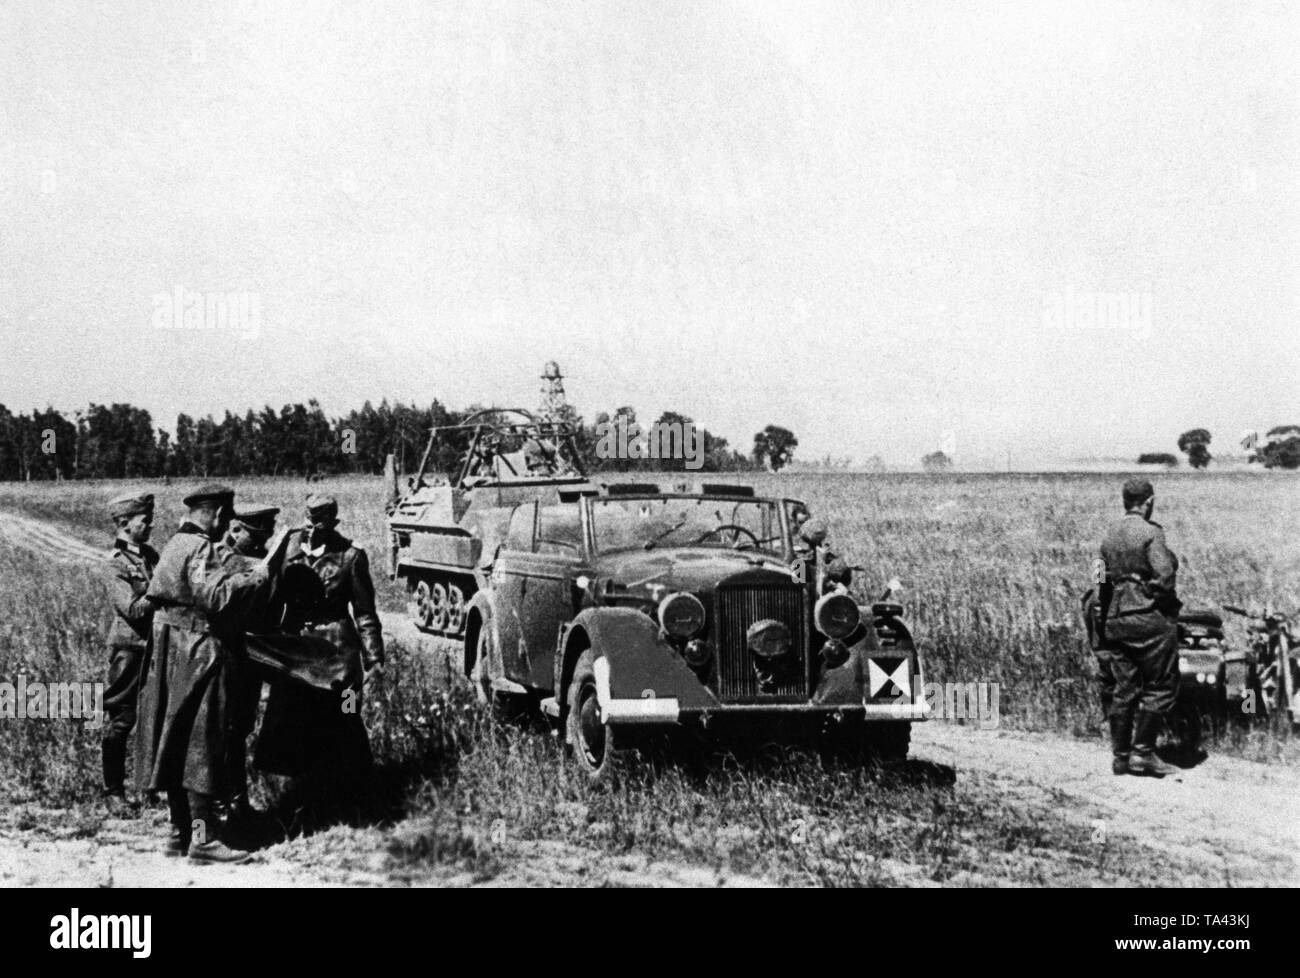 General Heinz Guderian (3rd from left, front), commander of the 2nd Panzer Group of Army Group Center on the day of the attack at the Bug. In the background, a Soviet observation tower. The vehicle on the left is an armored personnel carrier of the type Sd.Kfz. 250 with radio equipment. Stock Photo